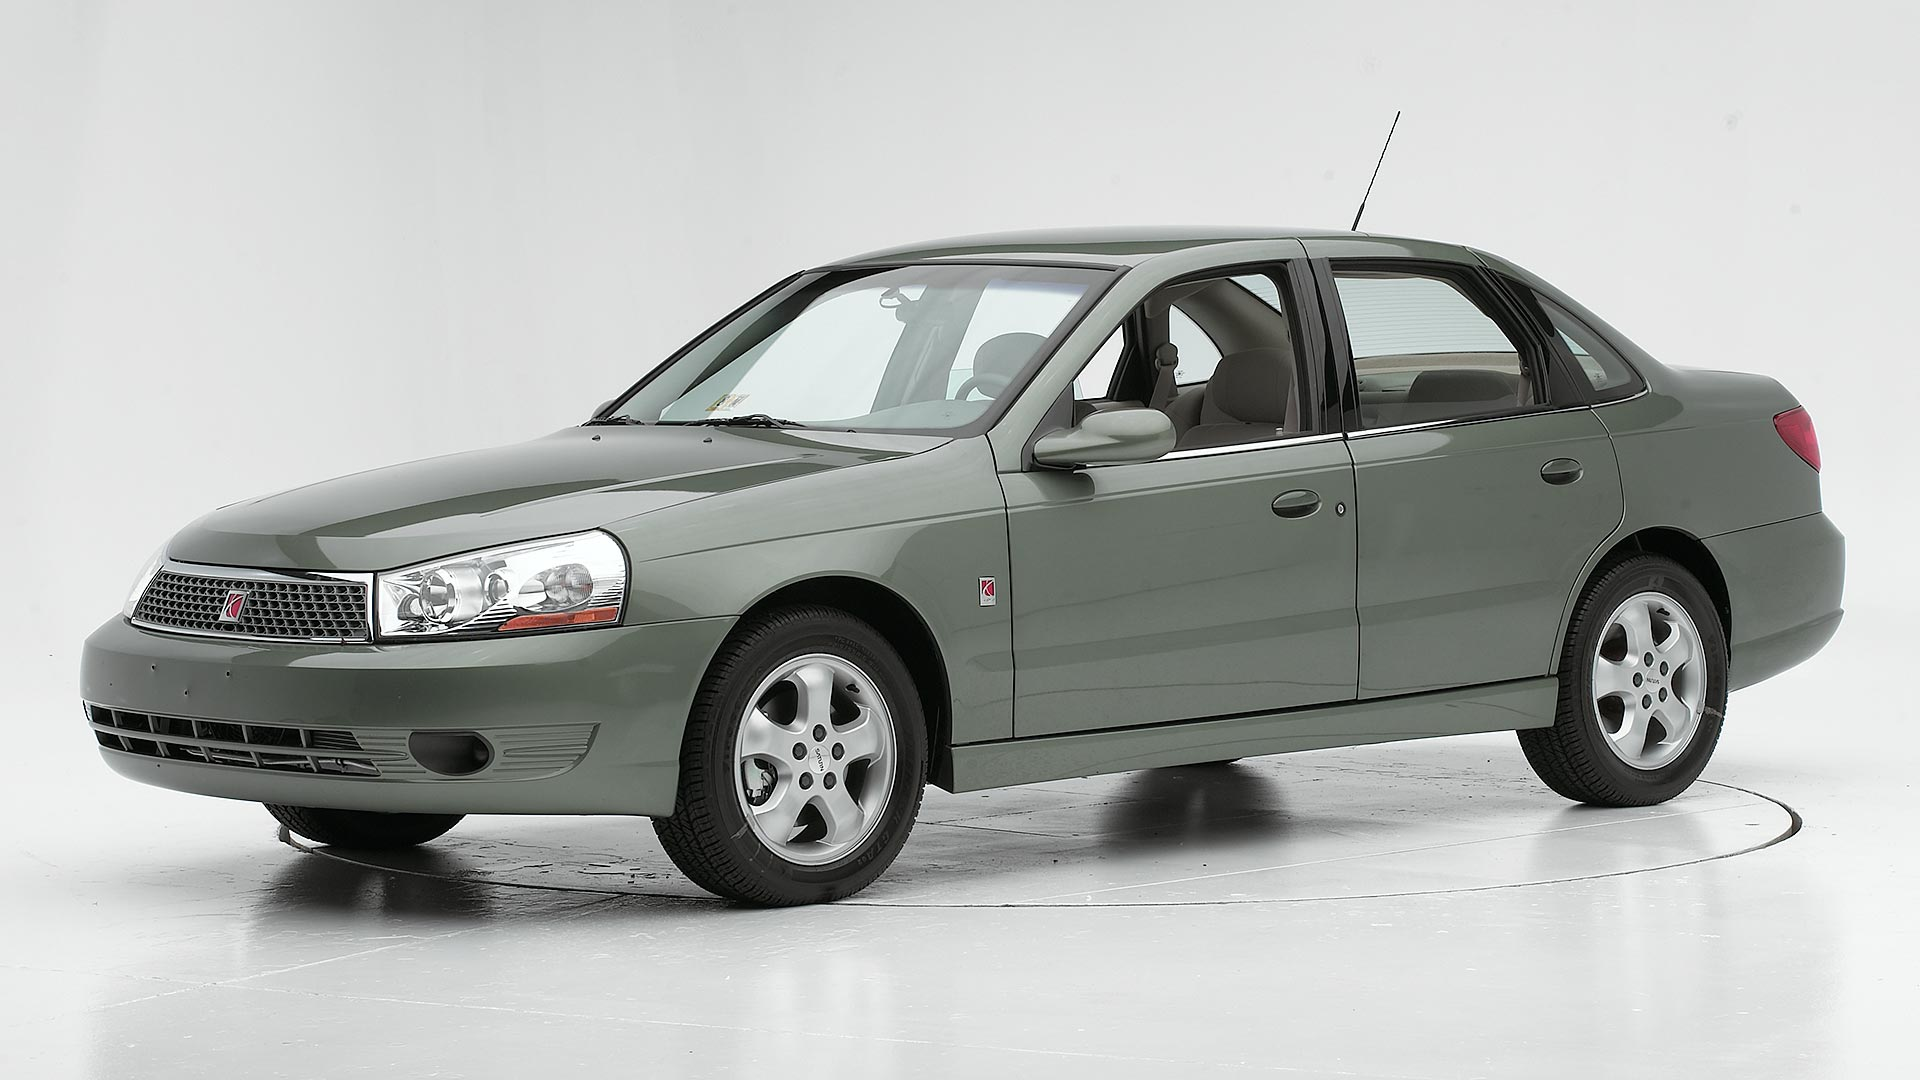 2005 Saturn L Series 4-door sedan